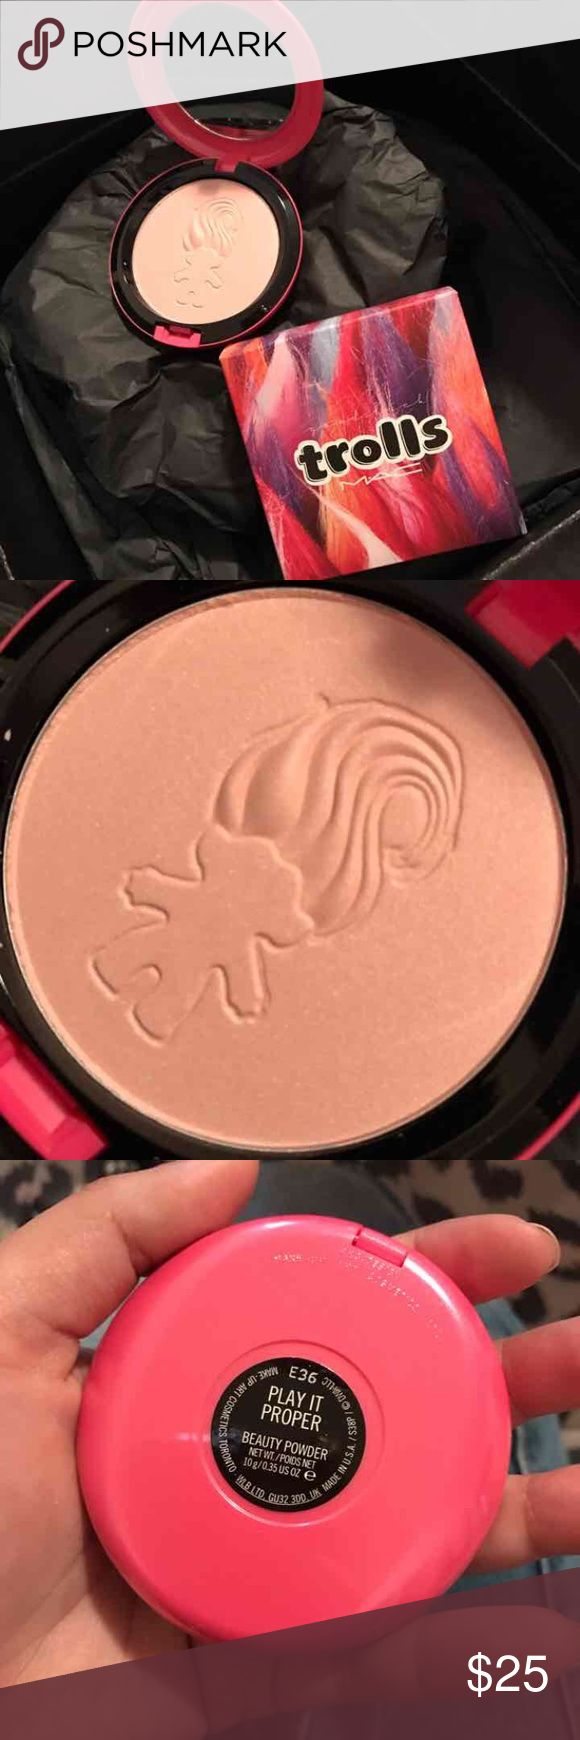 MAC COSMETICS HIGHLIGHTER 100% authentic! Limited edition trolls beauty powder. Brand new. Price firm unless bundled MAC Cosmetics Makeup Face Powder